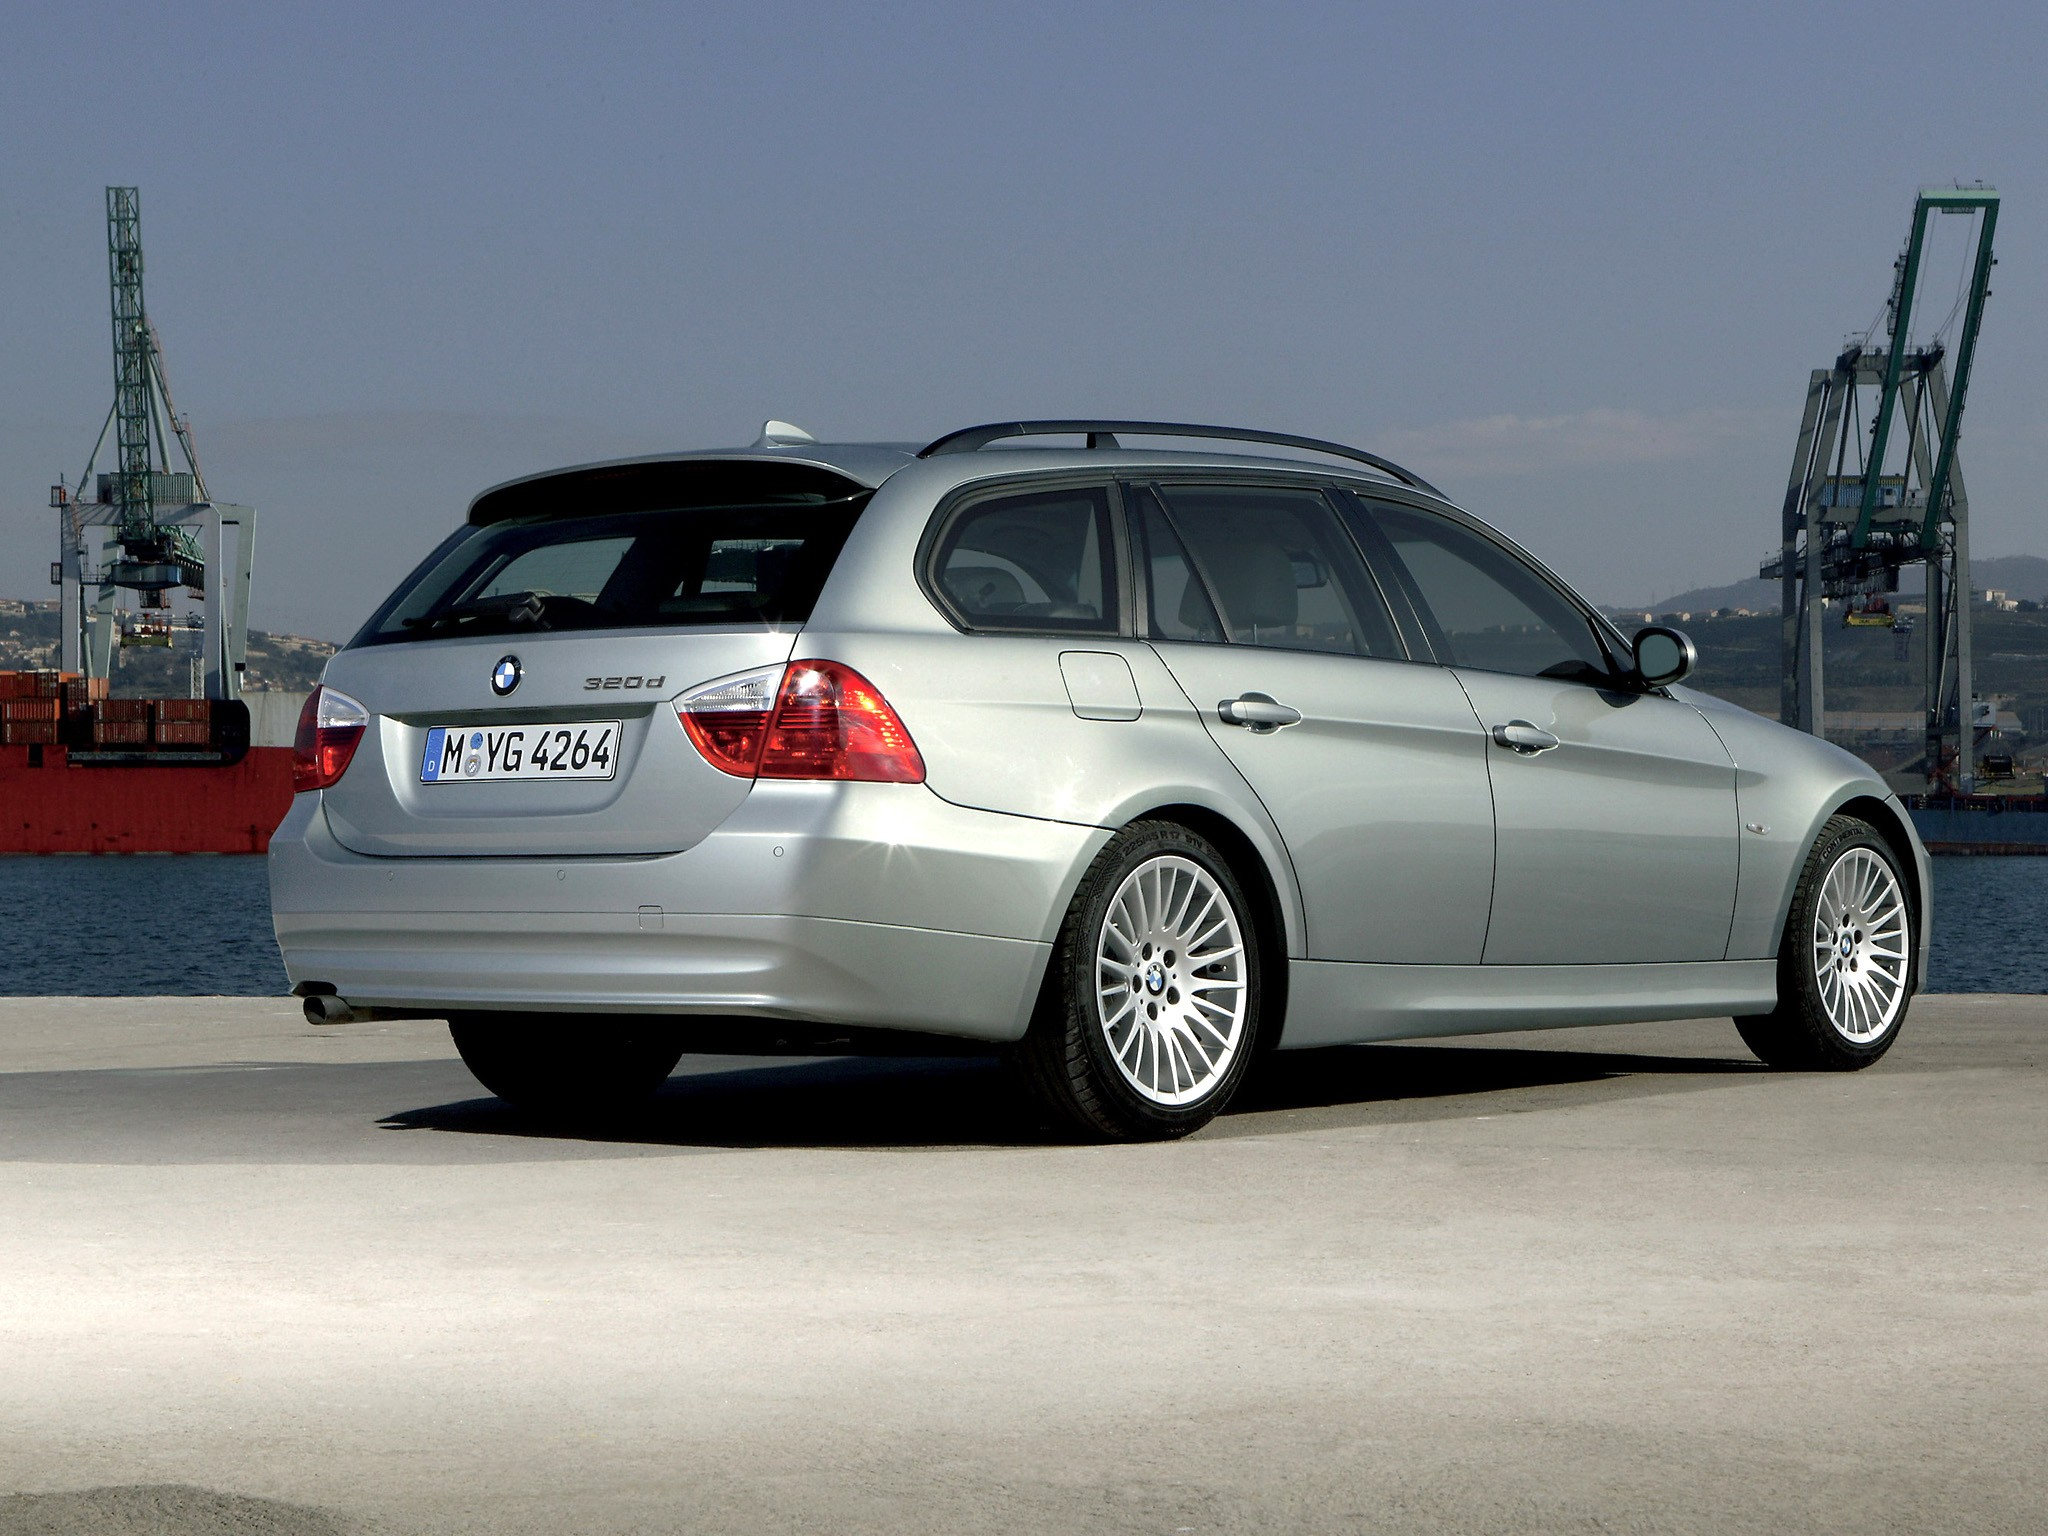 bmw e91 touring series 2006 2005 320d 2008 wallpapers 335i autoevolution 2007 2048 1536 cars